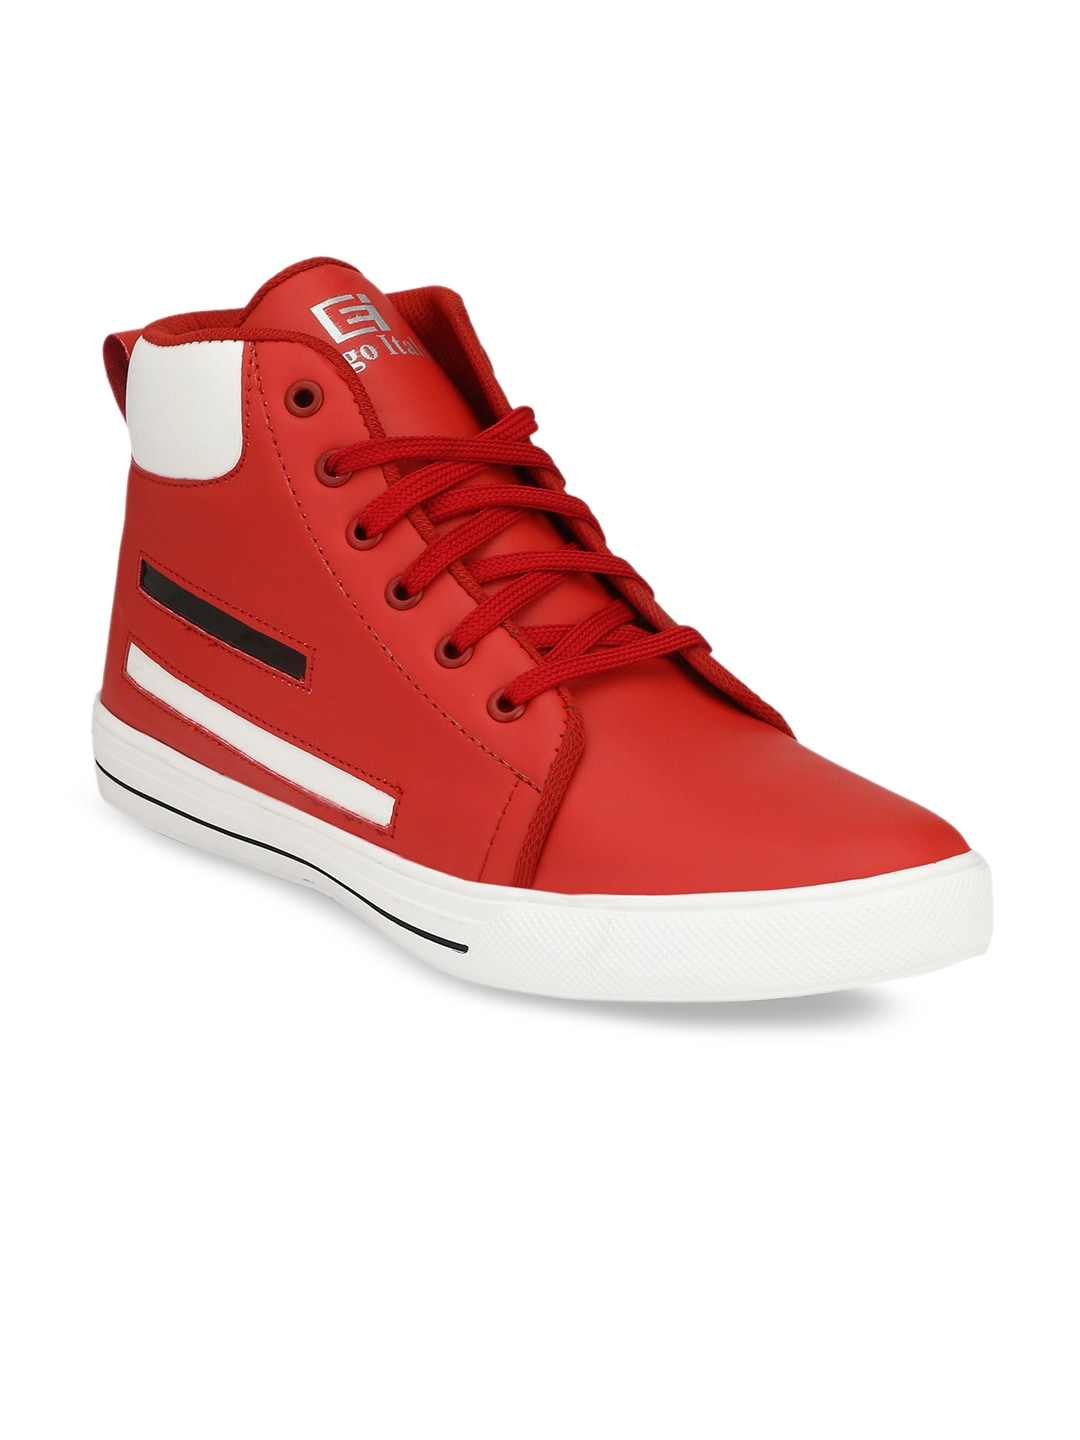 Shoes Buy Online Casual India Red In UVGqMpSz